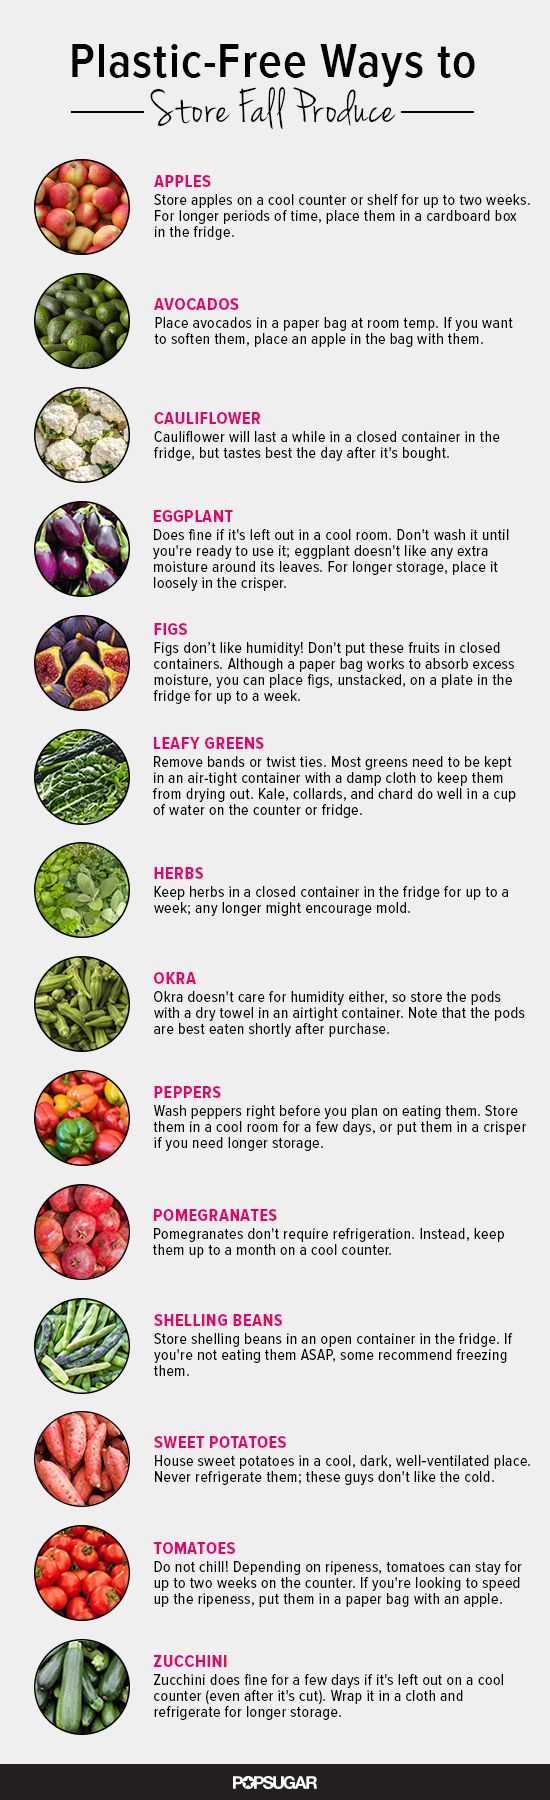 Check out our eco-friendly produce storage guide!